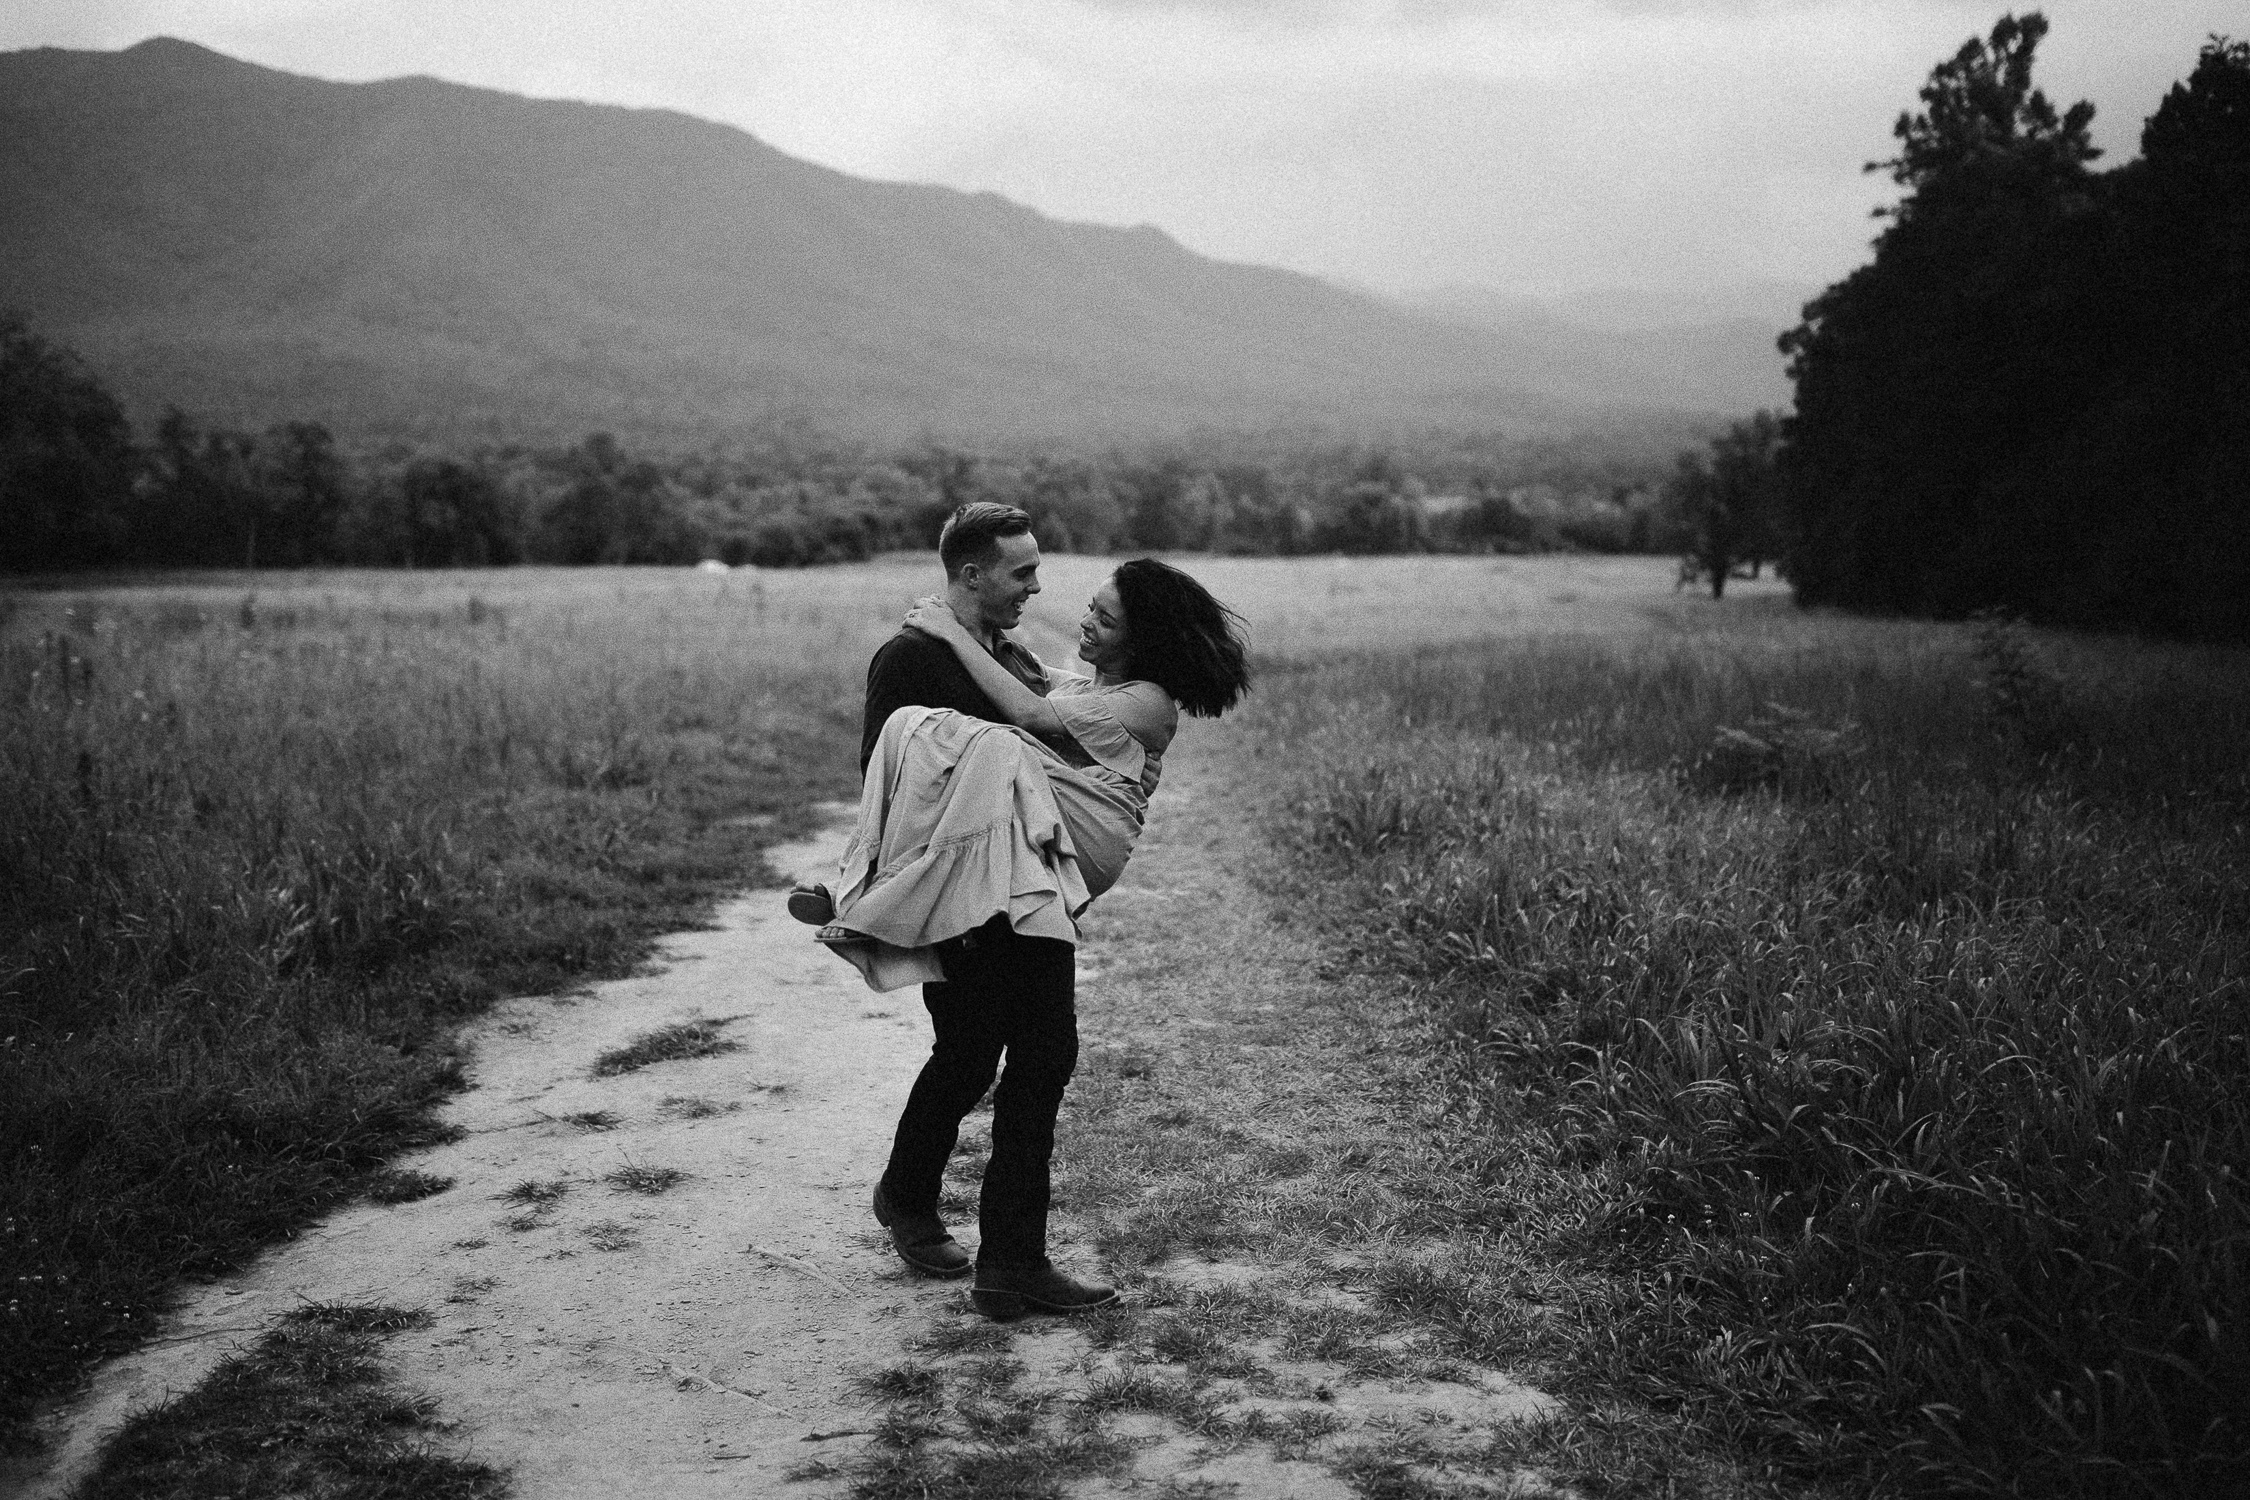 ariannamtorres and isaac engagement session at cades cove smoky mountains elopement-21.jpg